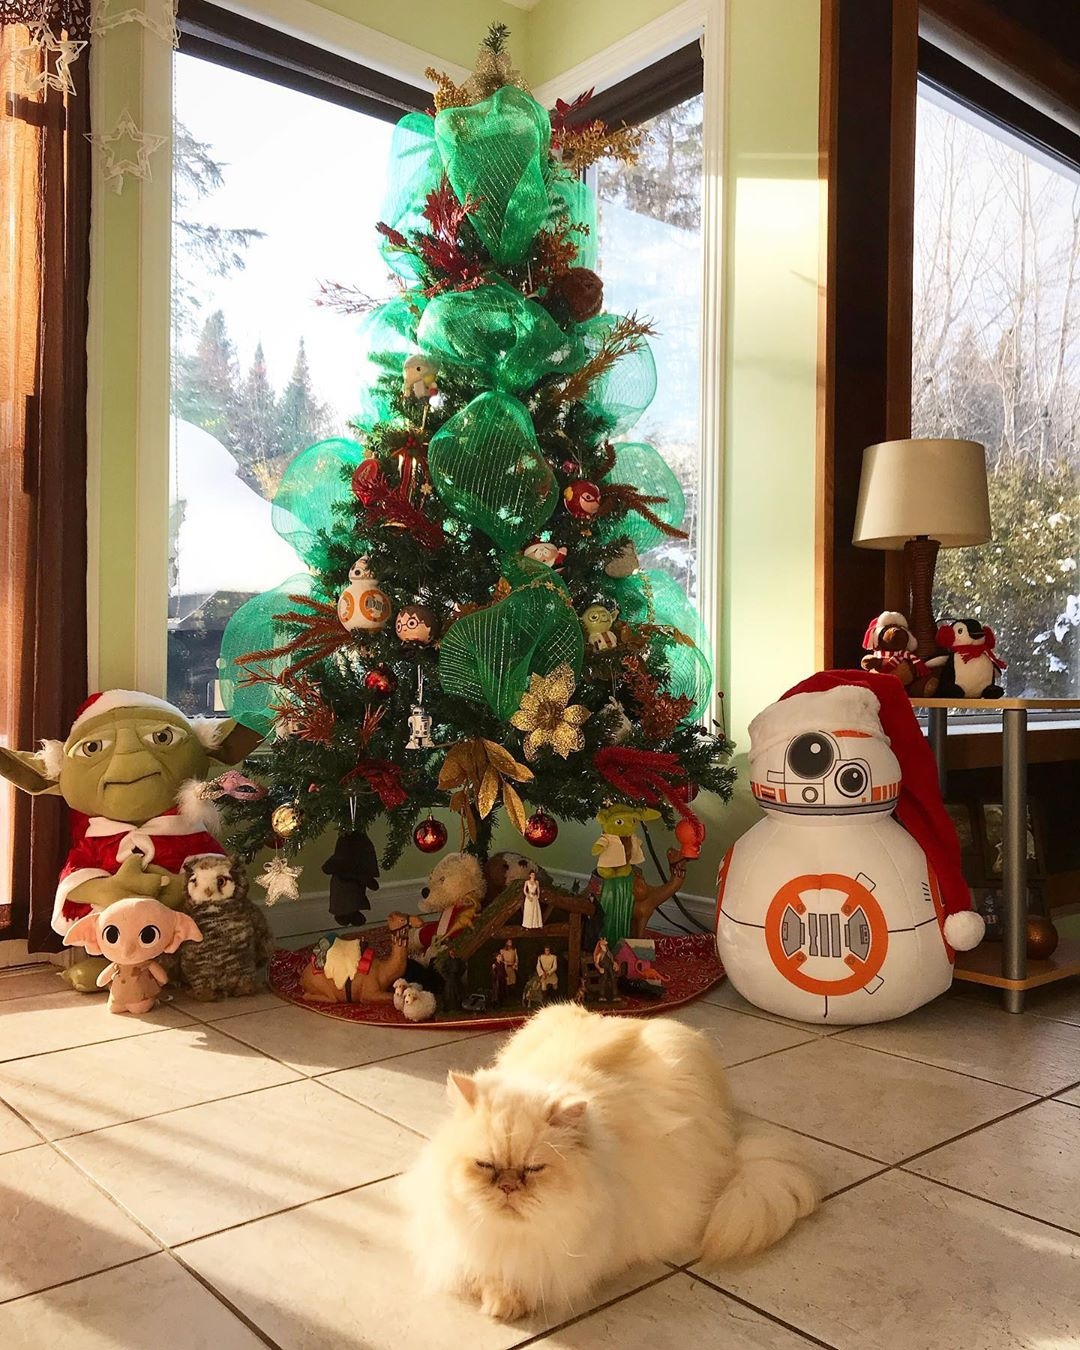 Beautiful cozy fluffy cat and Star Wars inspired Christmas tree and holiday decor